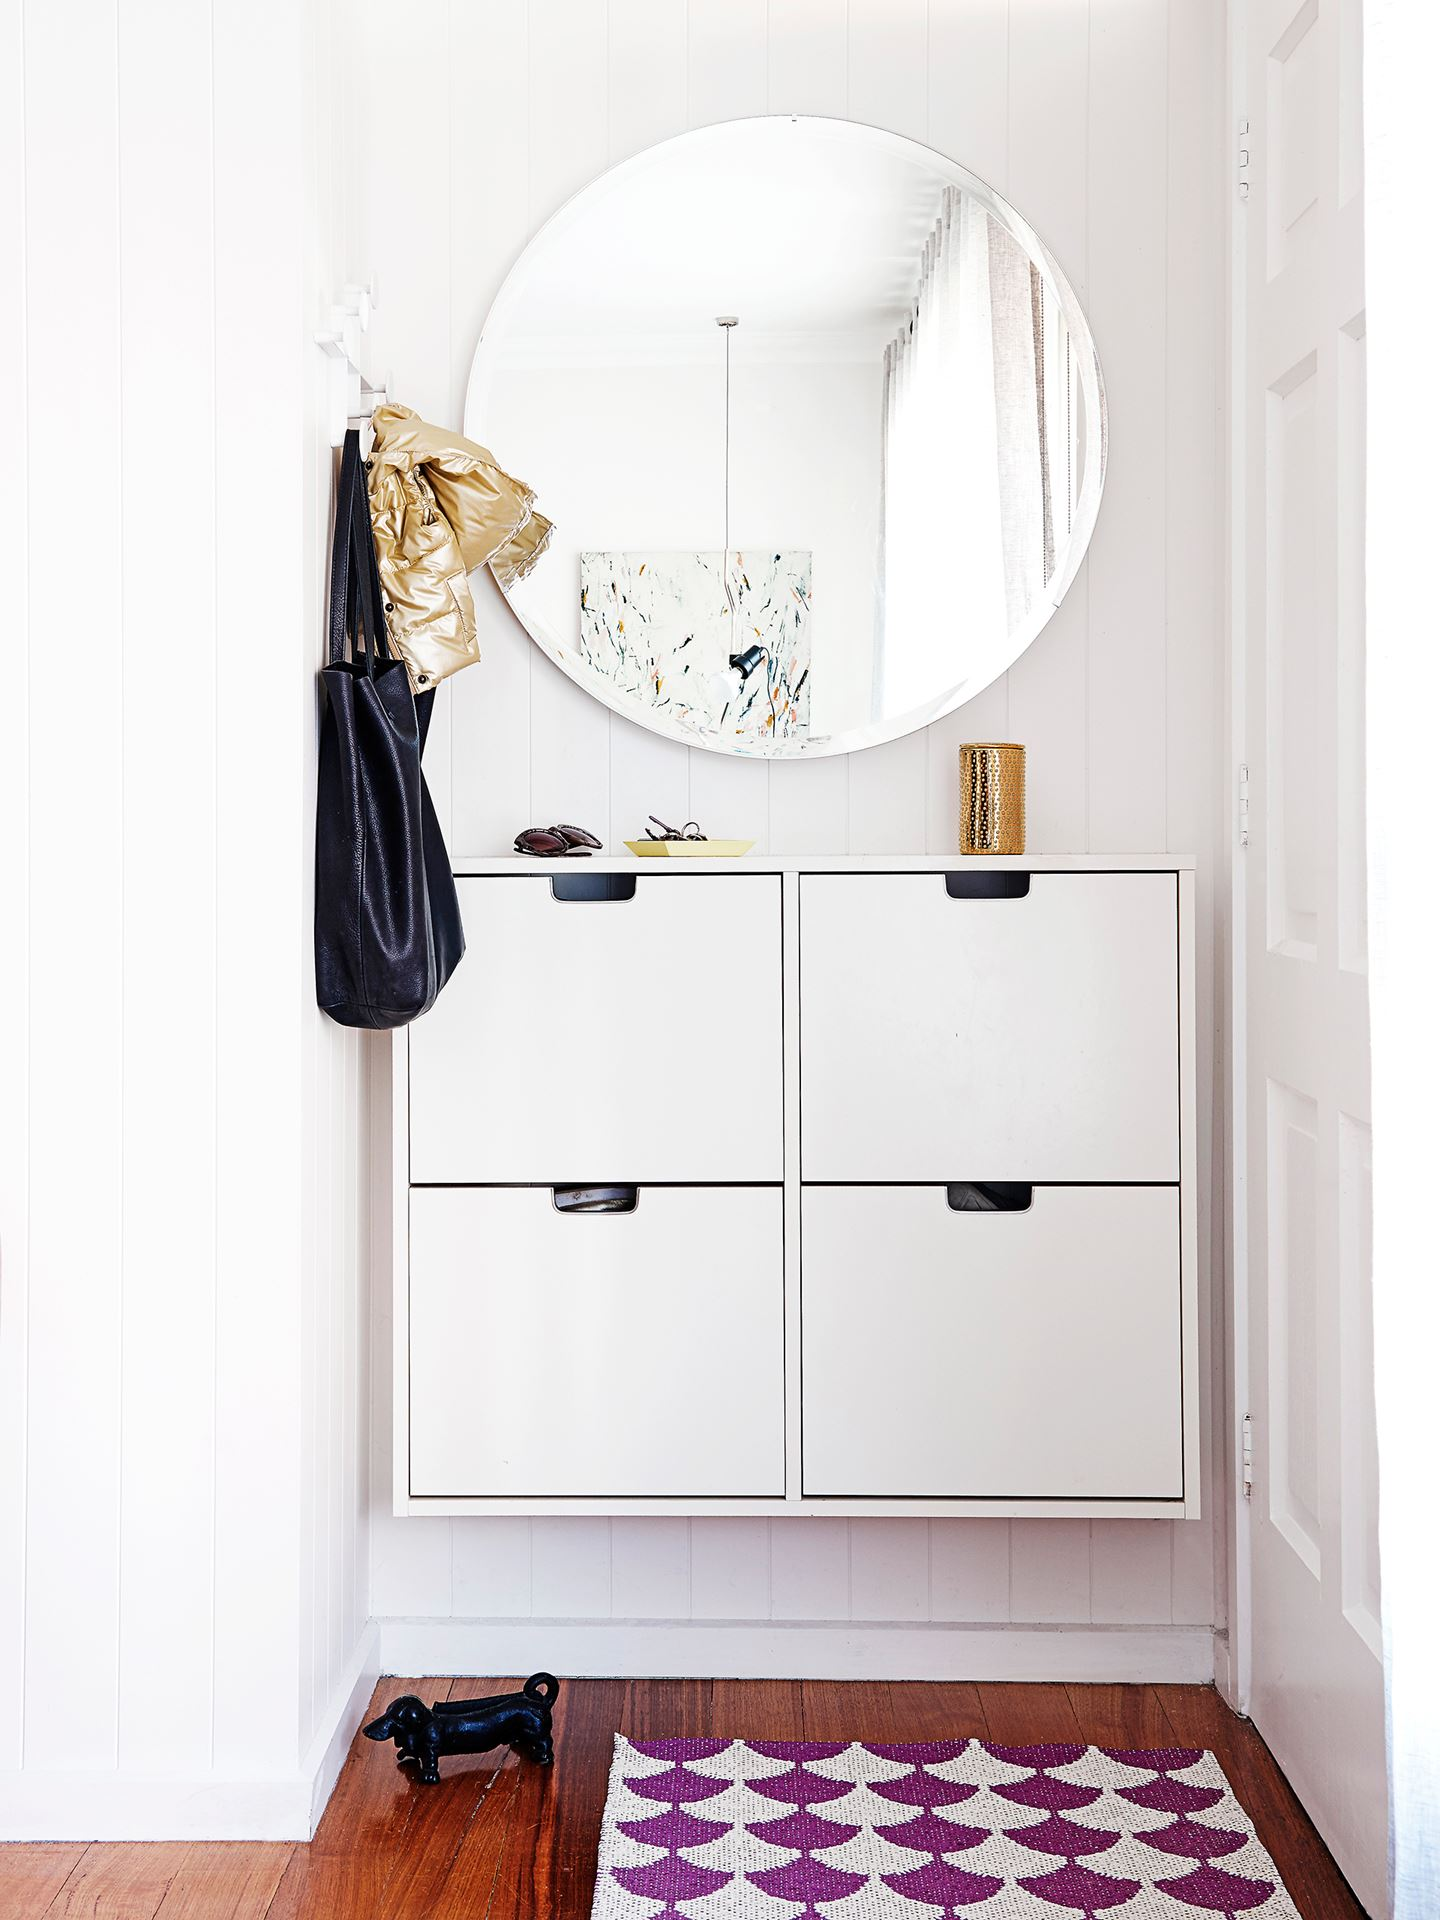 Foyer Minimalist Shoes : Ditch the clutter minimalist entryways